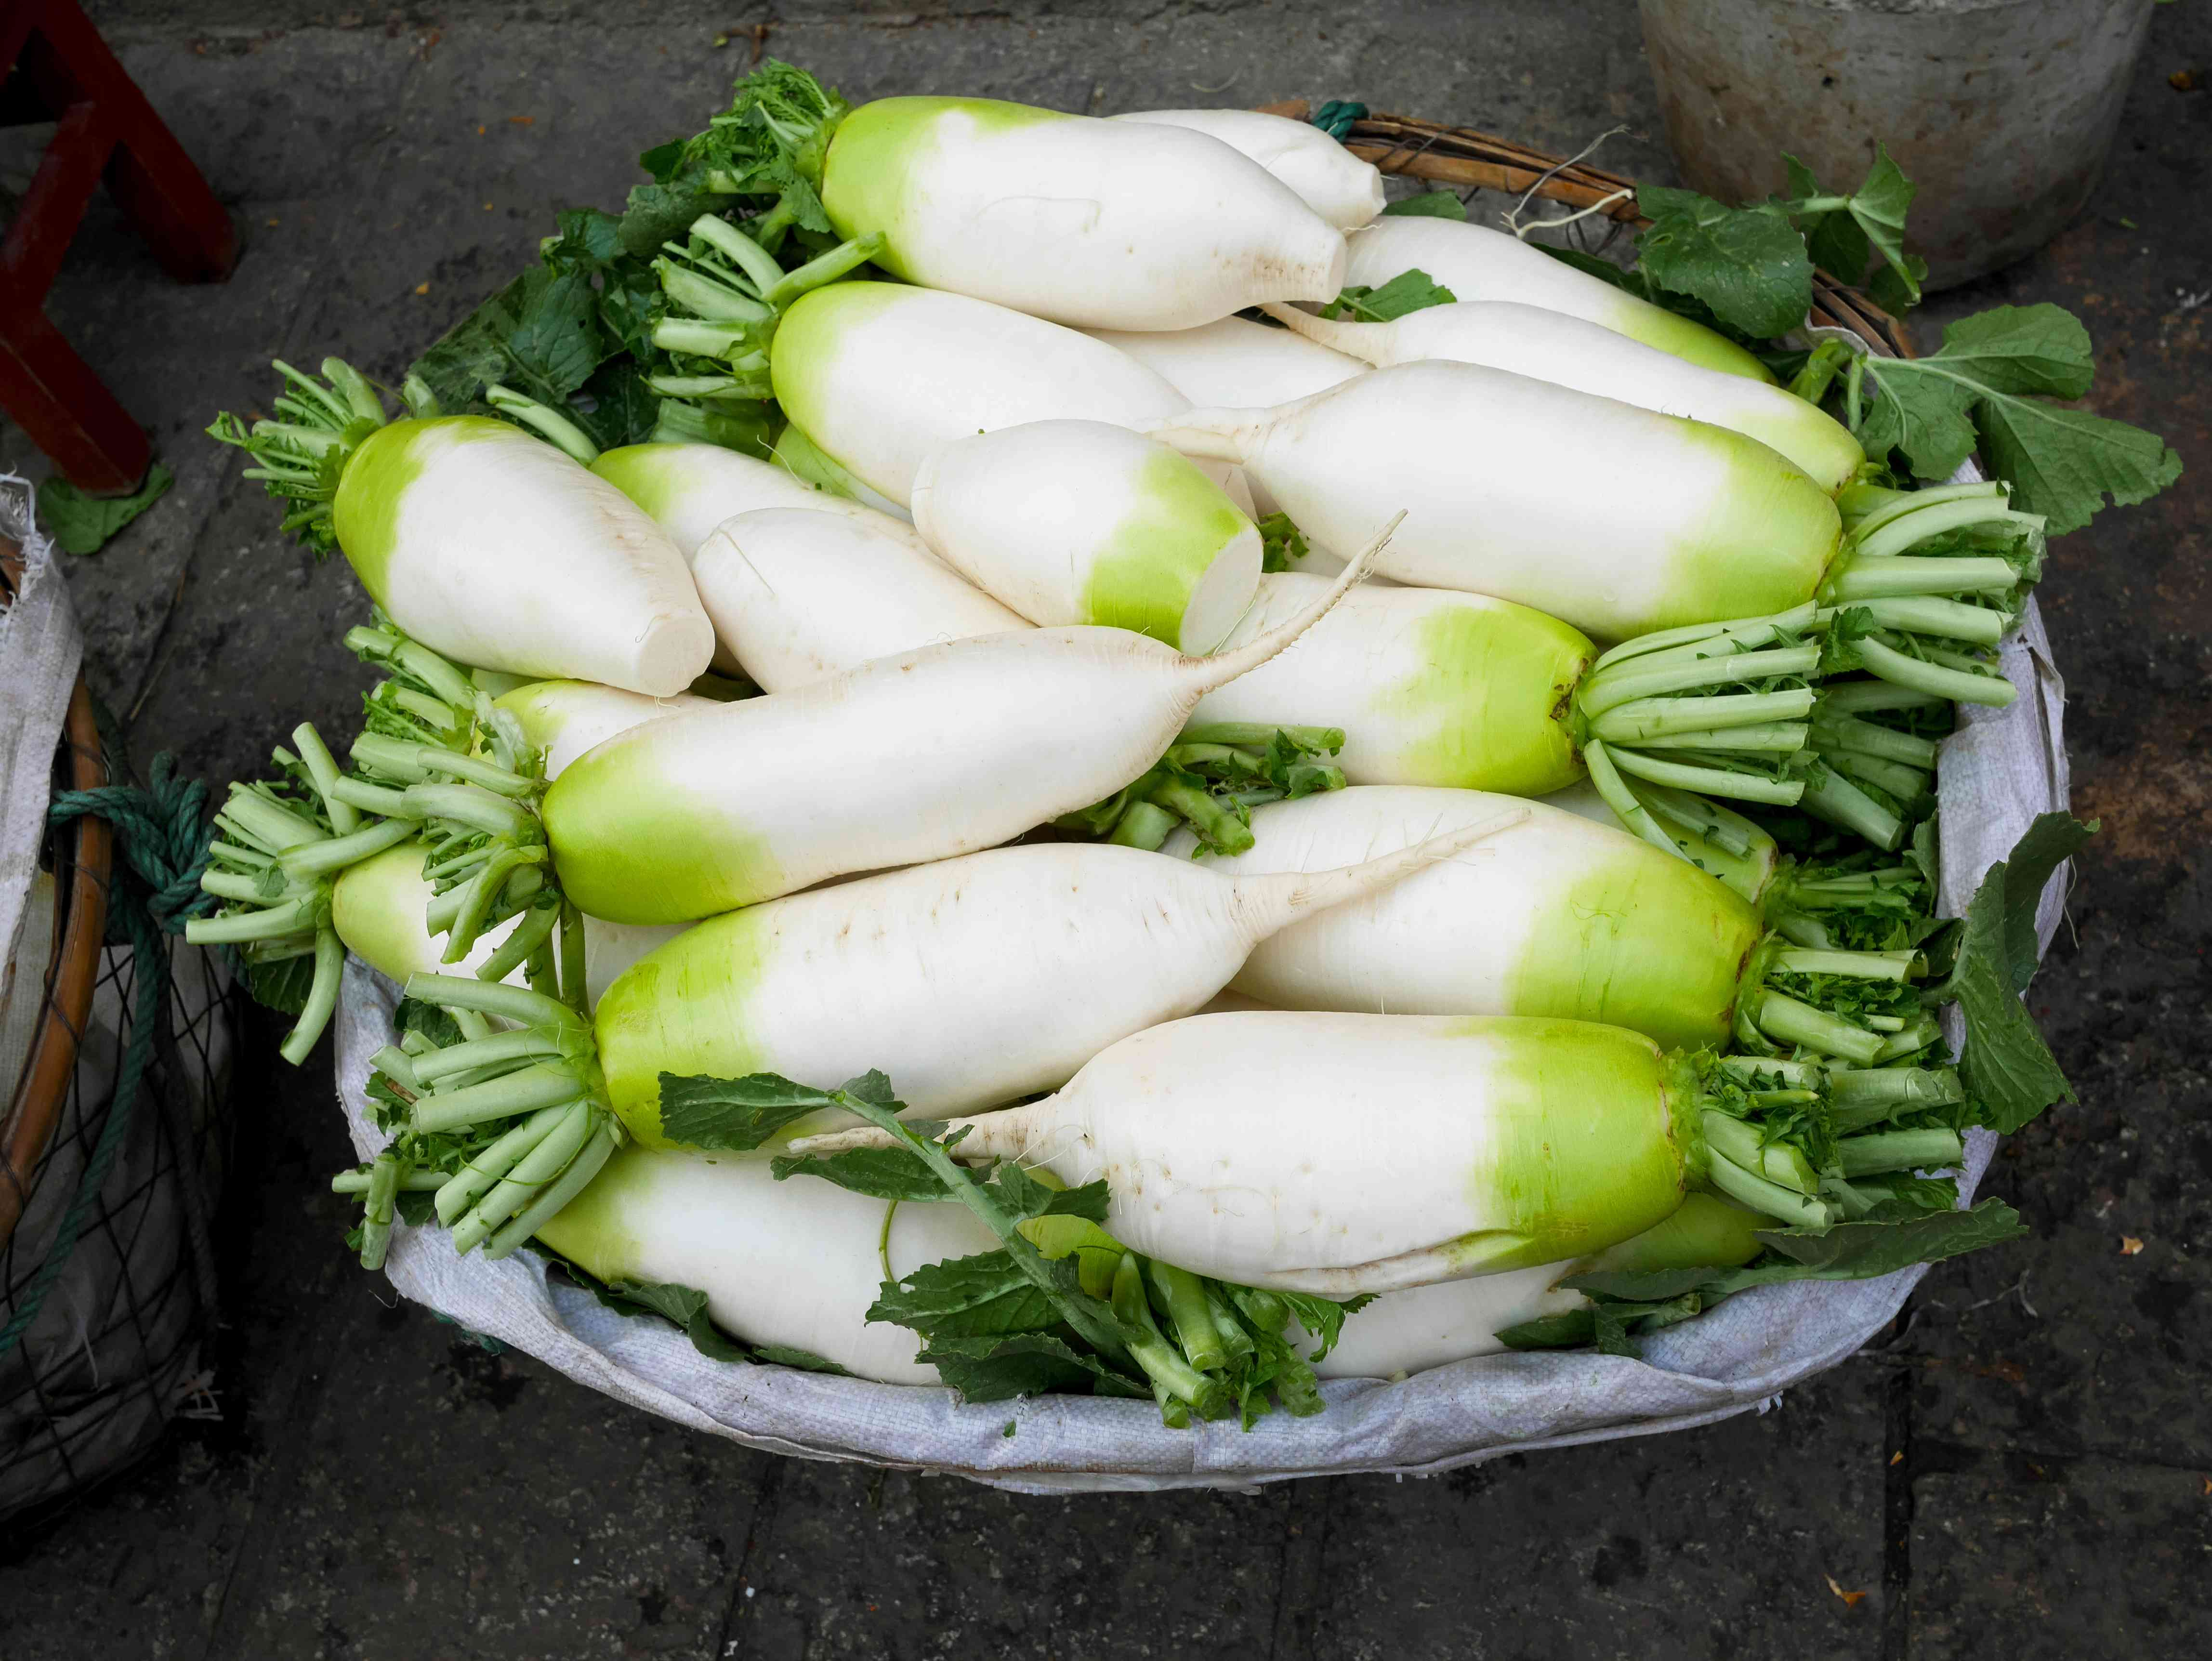 Asian long white radishes or Daikon in a basket